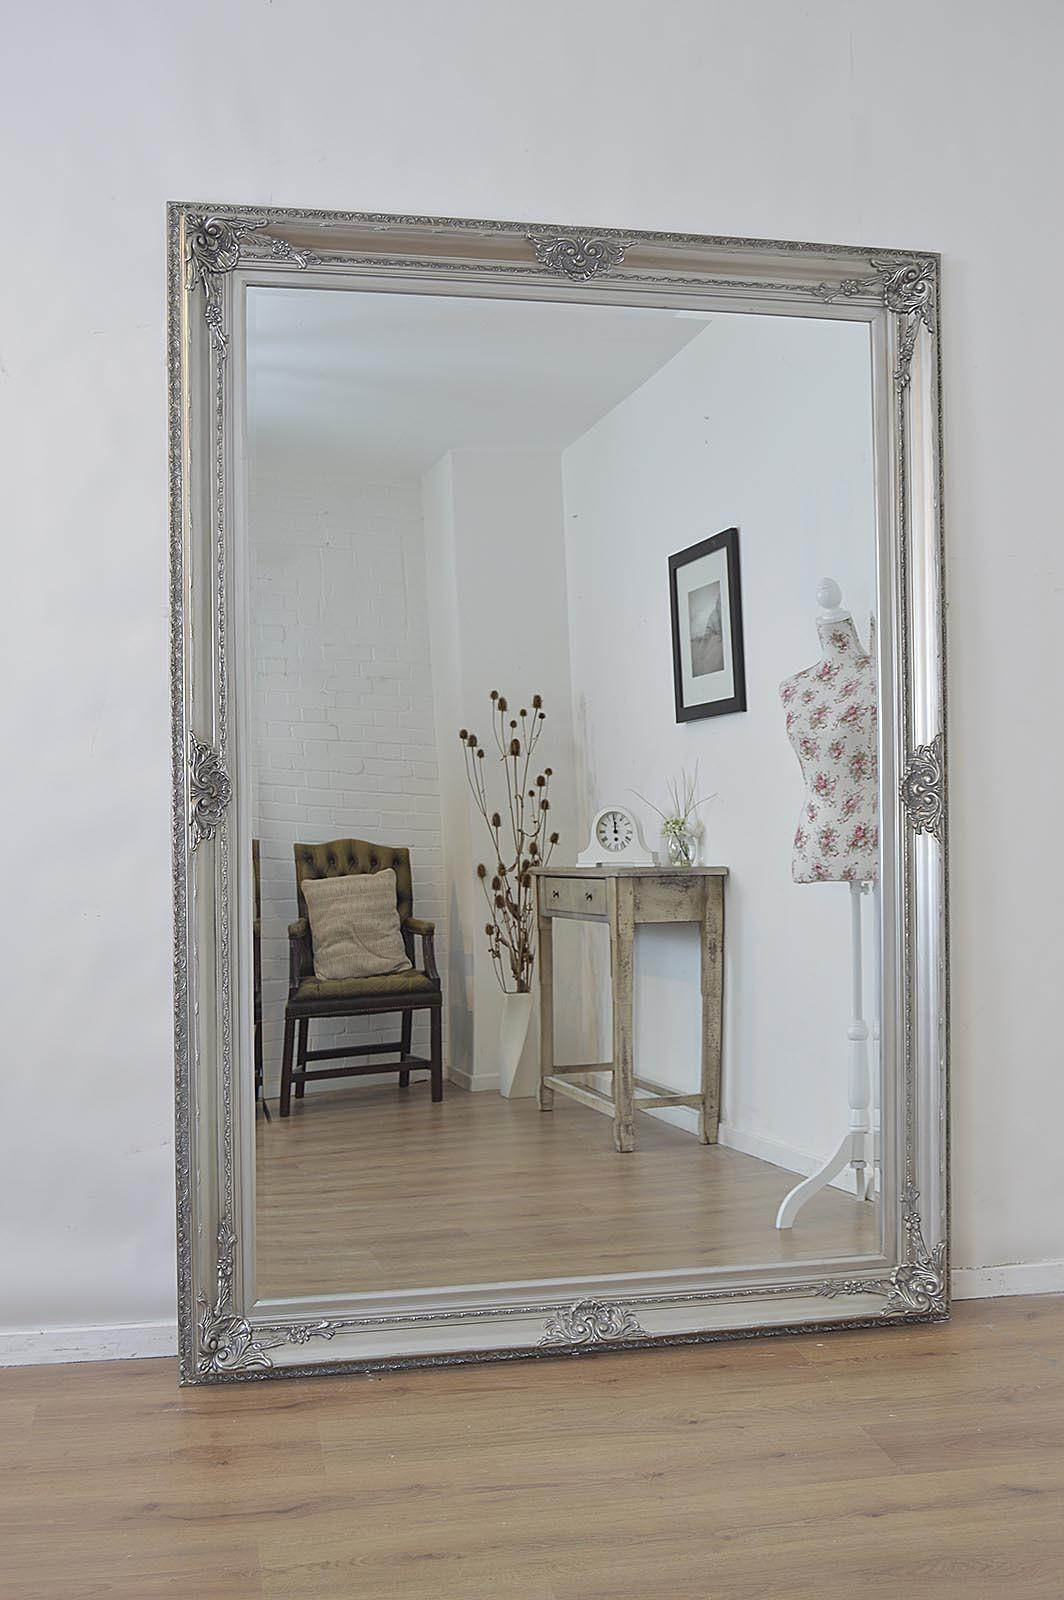 Remarkable Ideas Wall Mirrors Large Shocking Large Wall Mirror Intended For Fancy Wall Mirrors For Sale (Image 14 of 20)